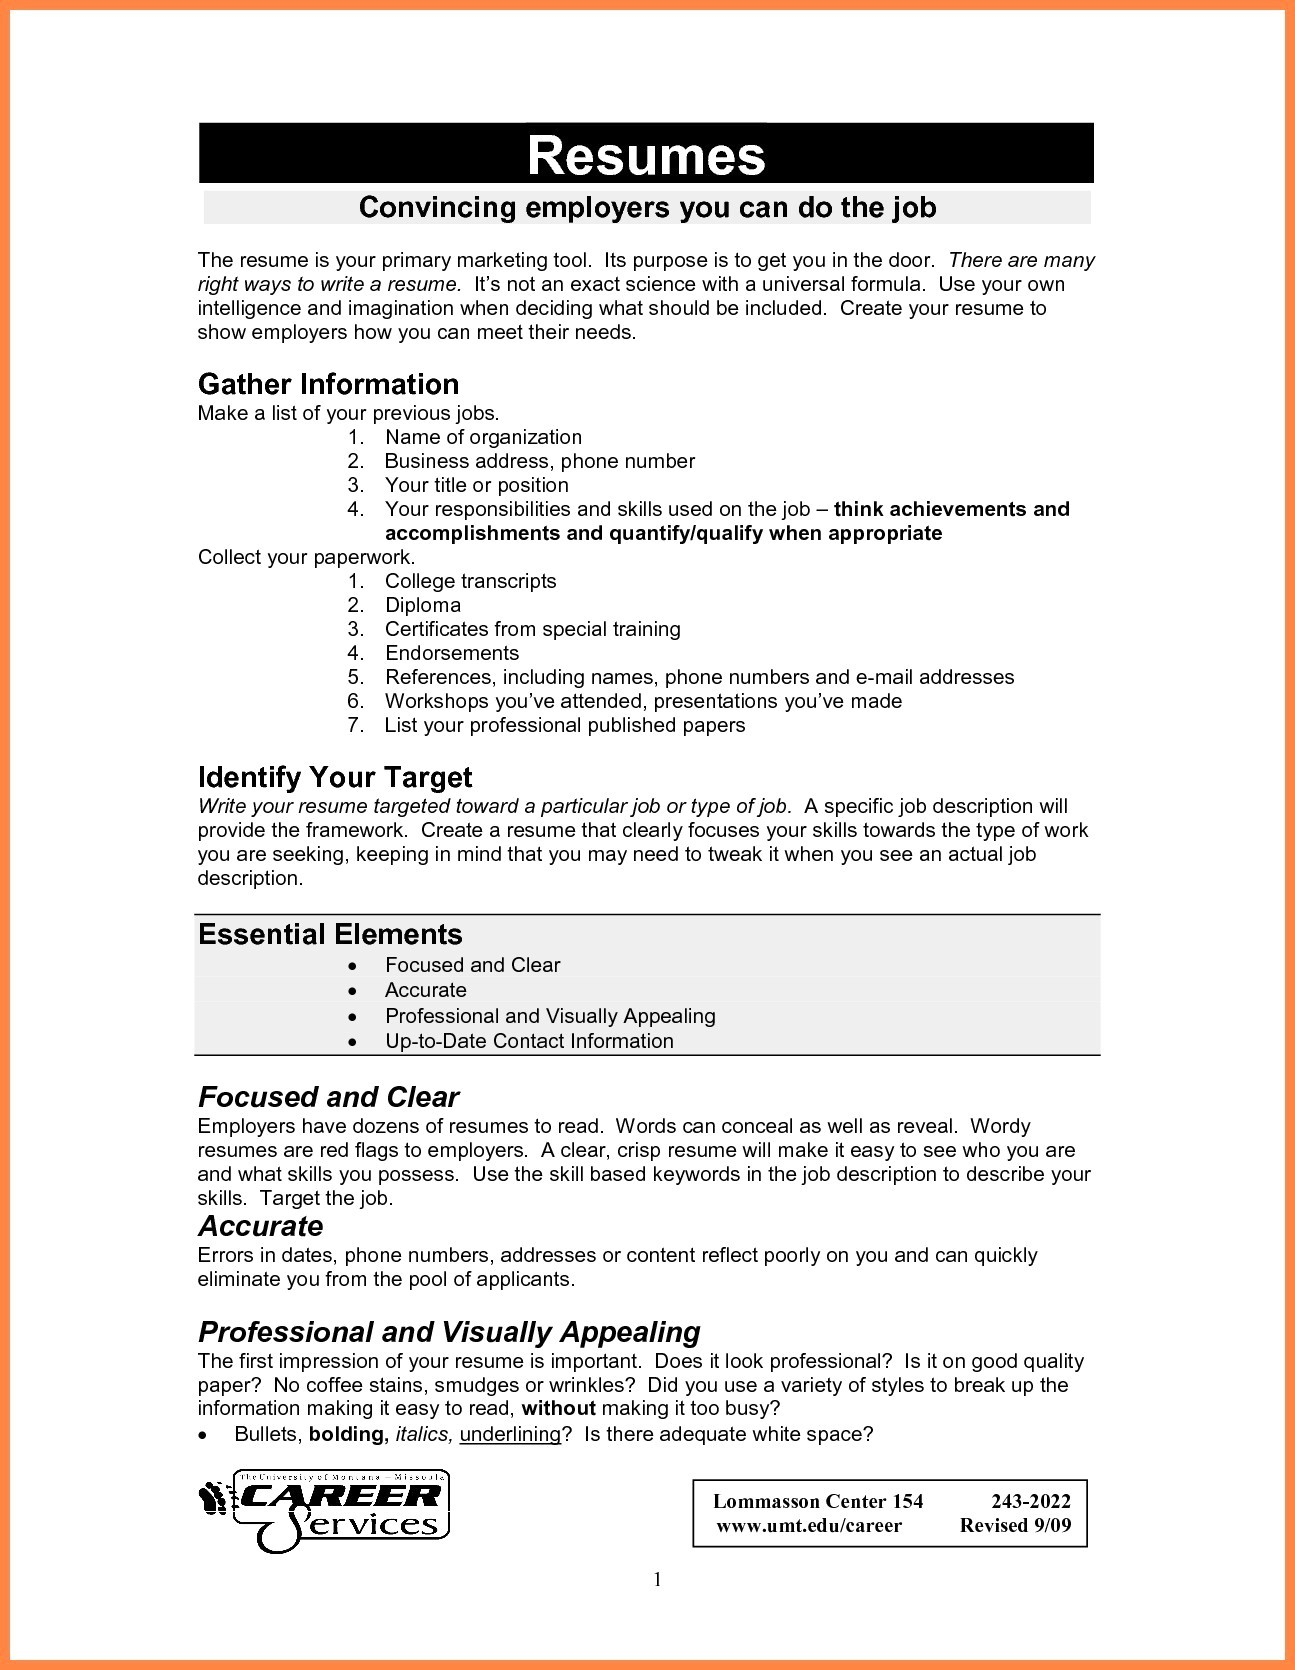 Painter Job Description for Resume - Resume for College Application Sample Refrence How to Make Resume